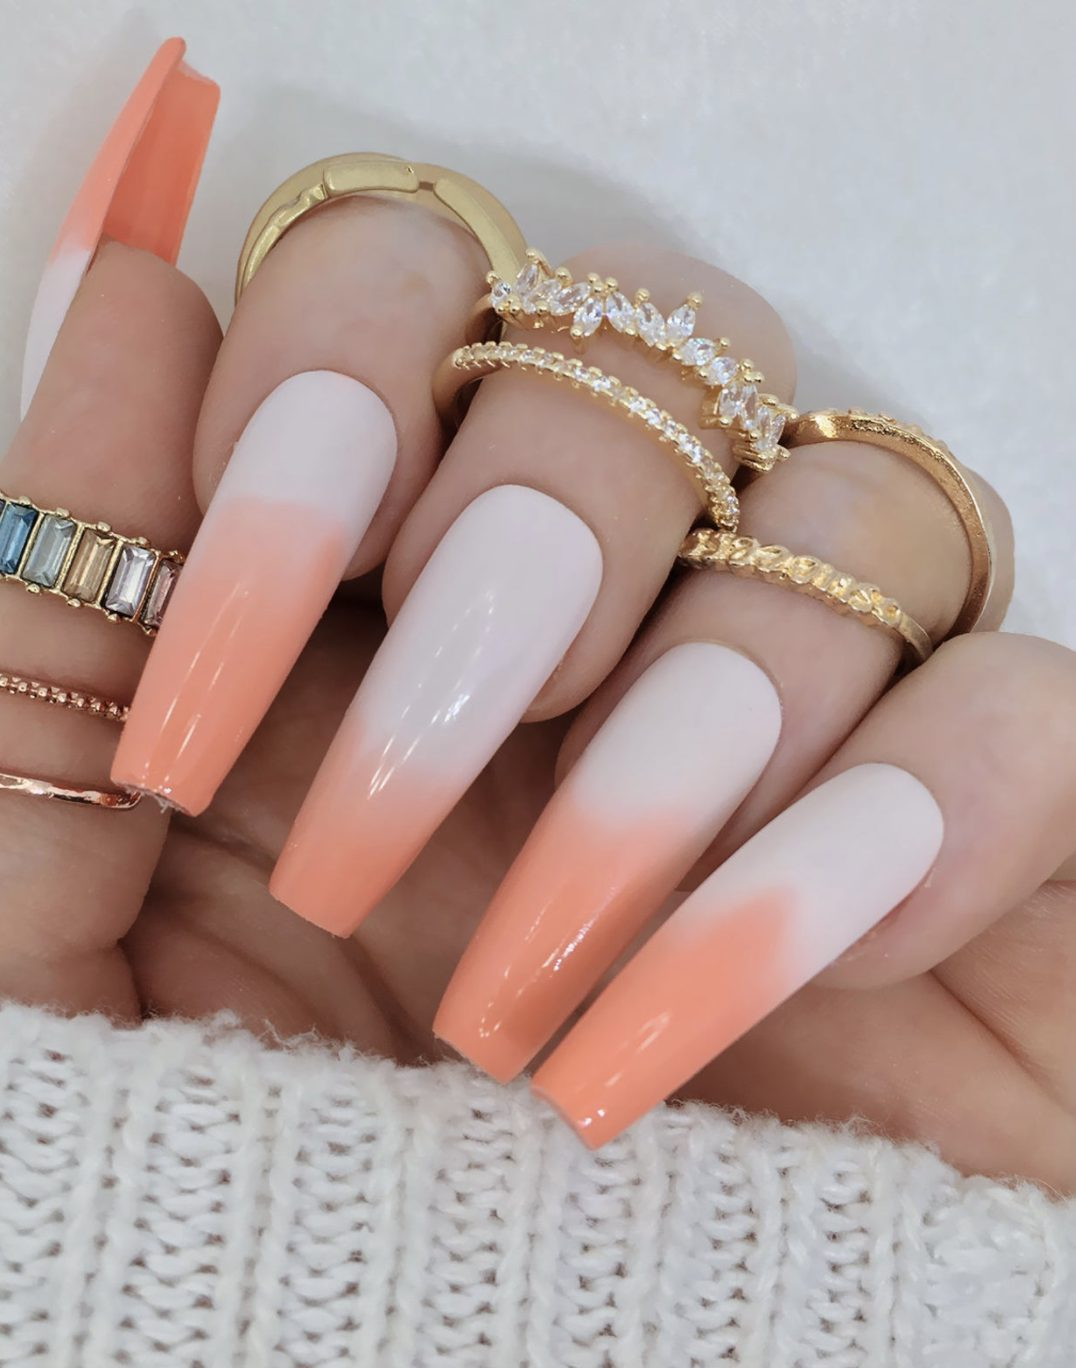 French tip peach ombre nails